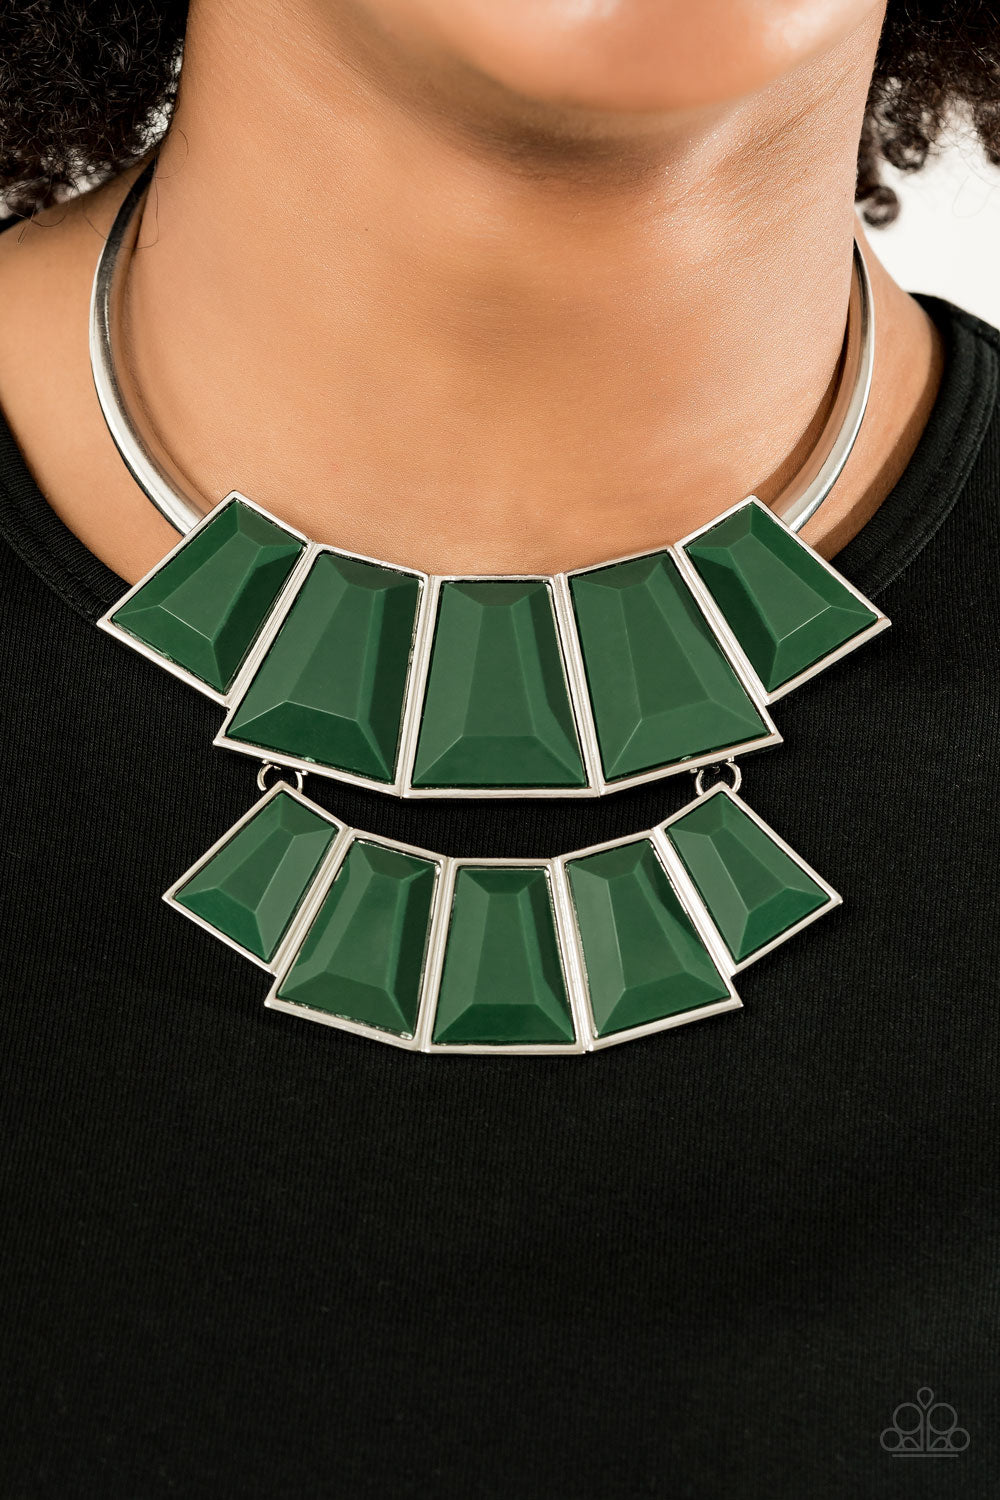 Green 2019 One Life Convention Paparazzi Jewelry Necklace